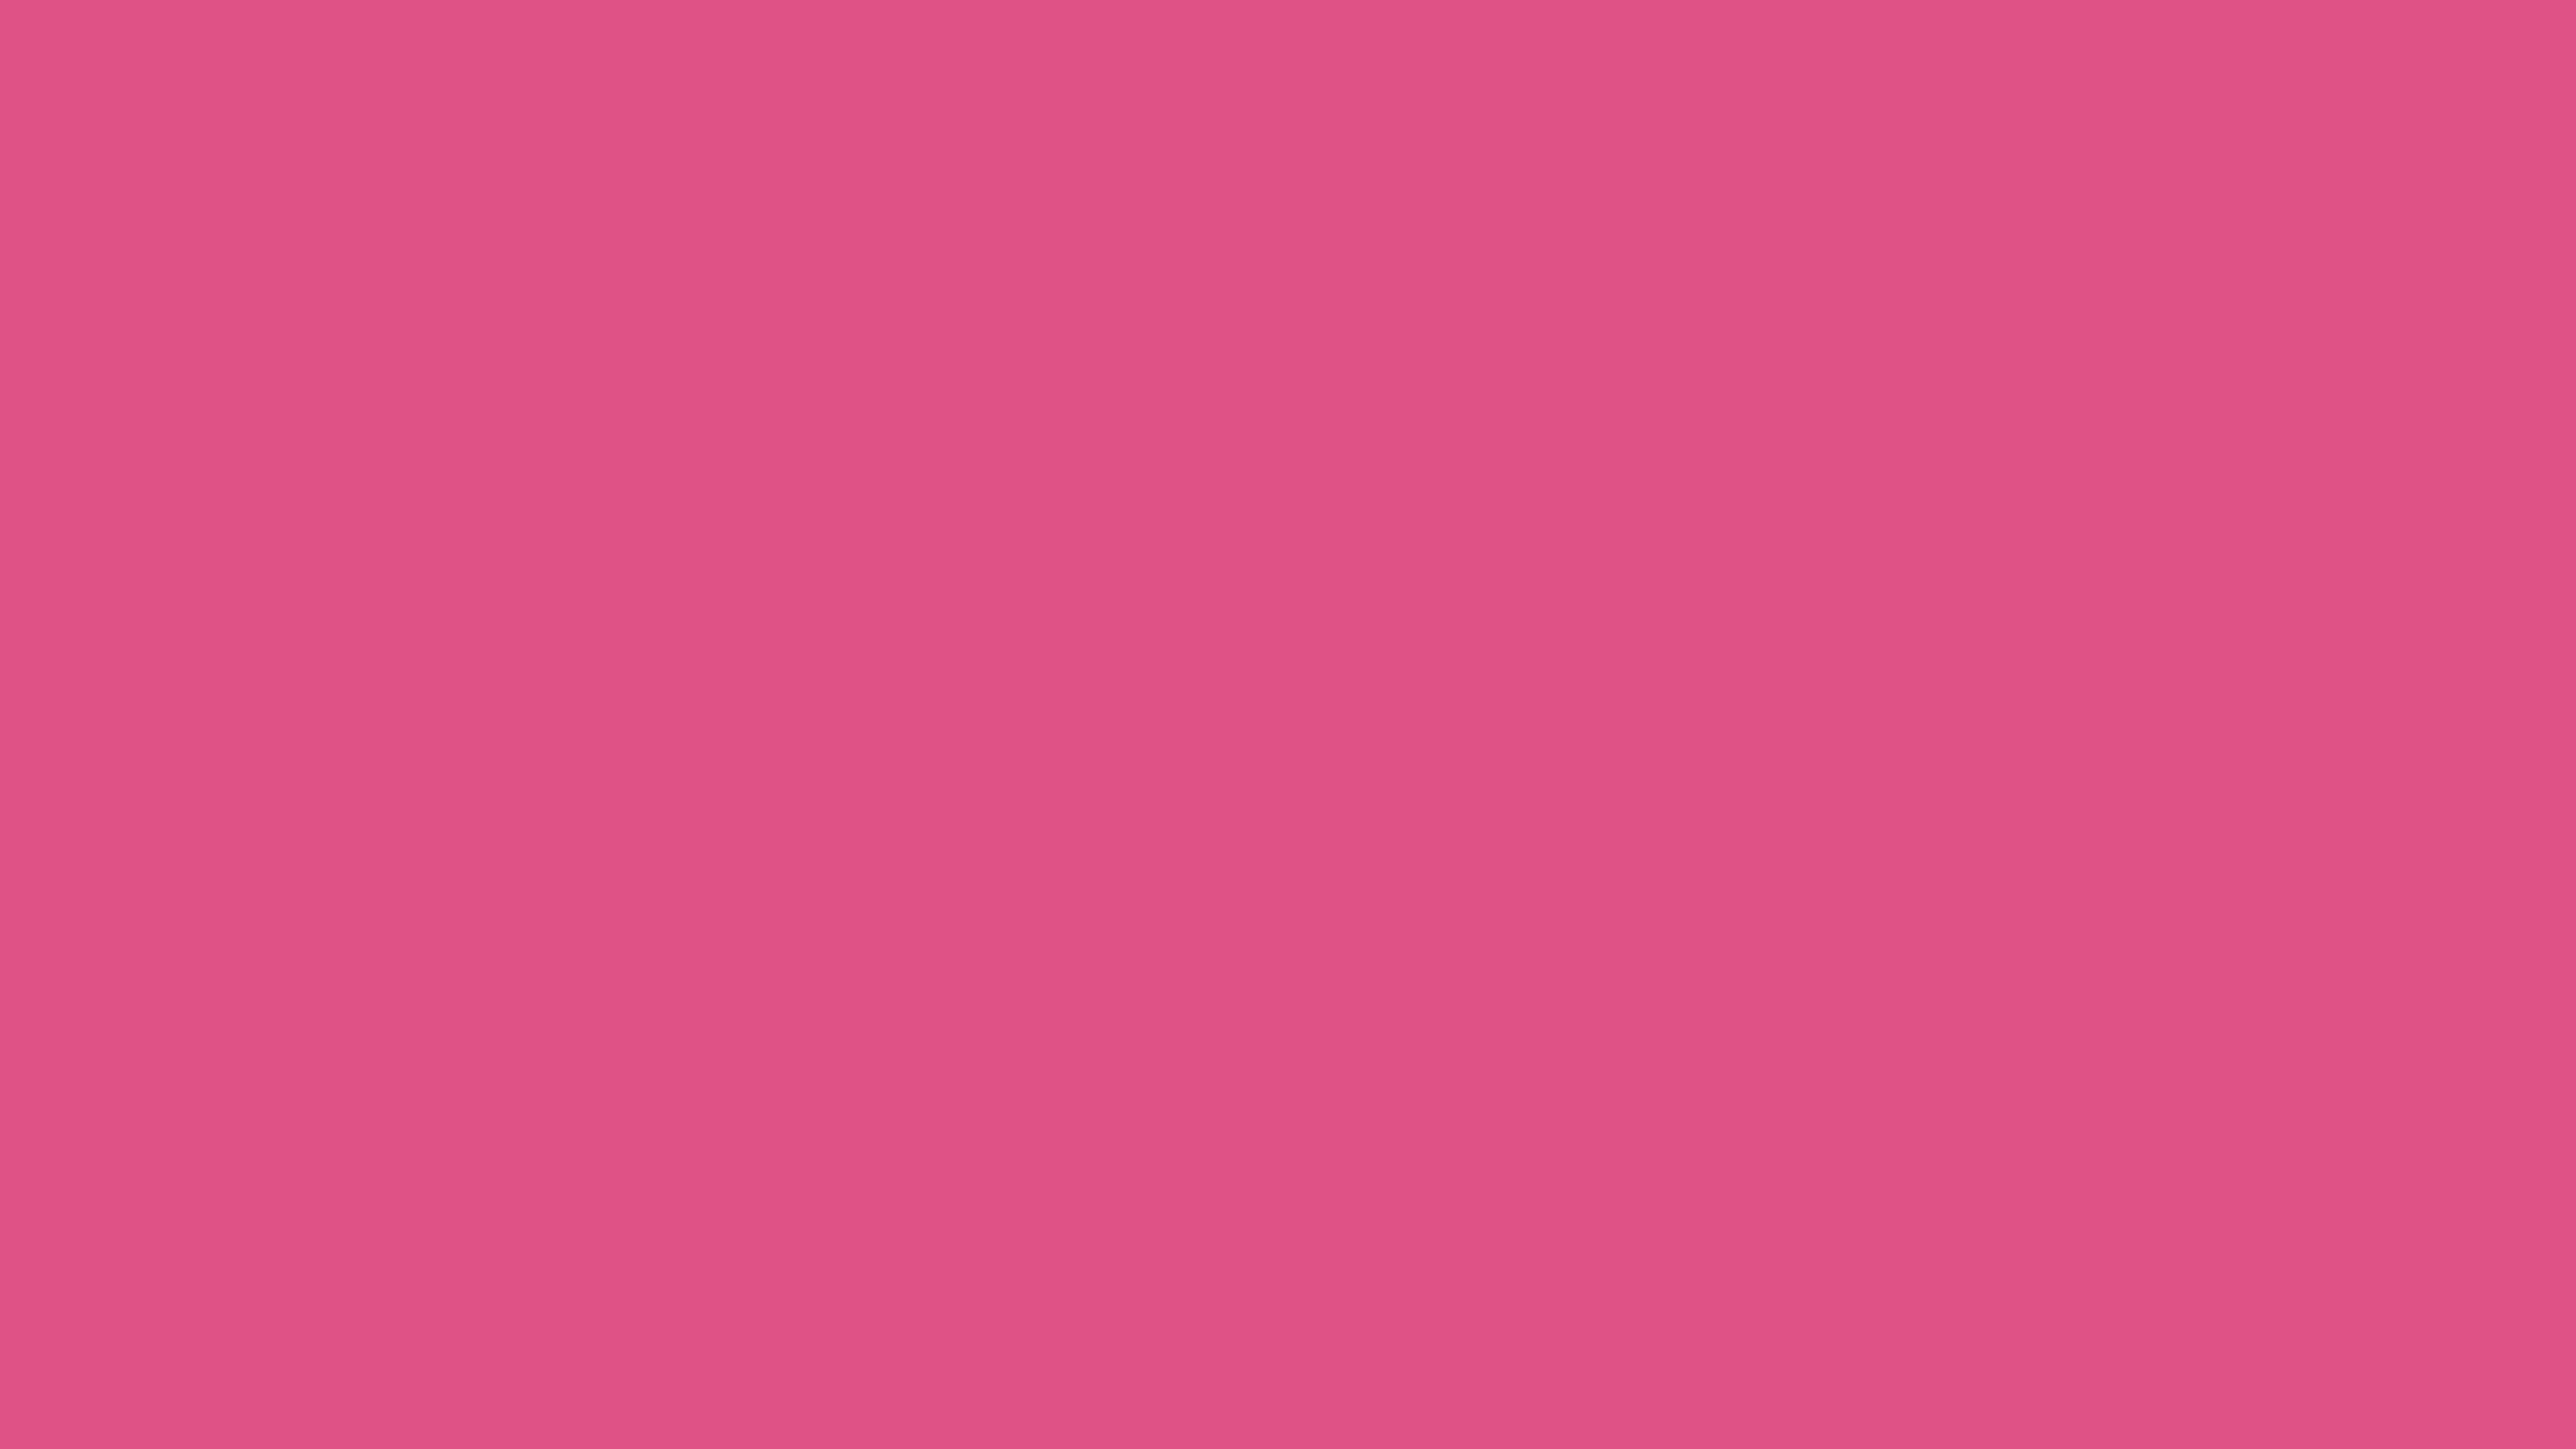 3840x2160 Fandango Pink Solid Color Background